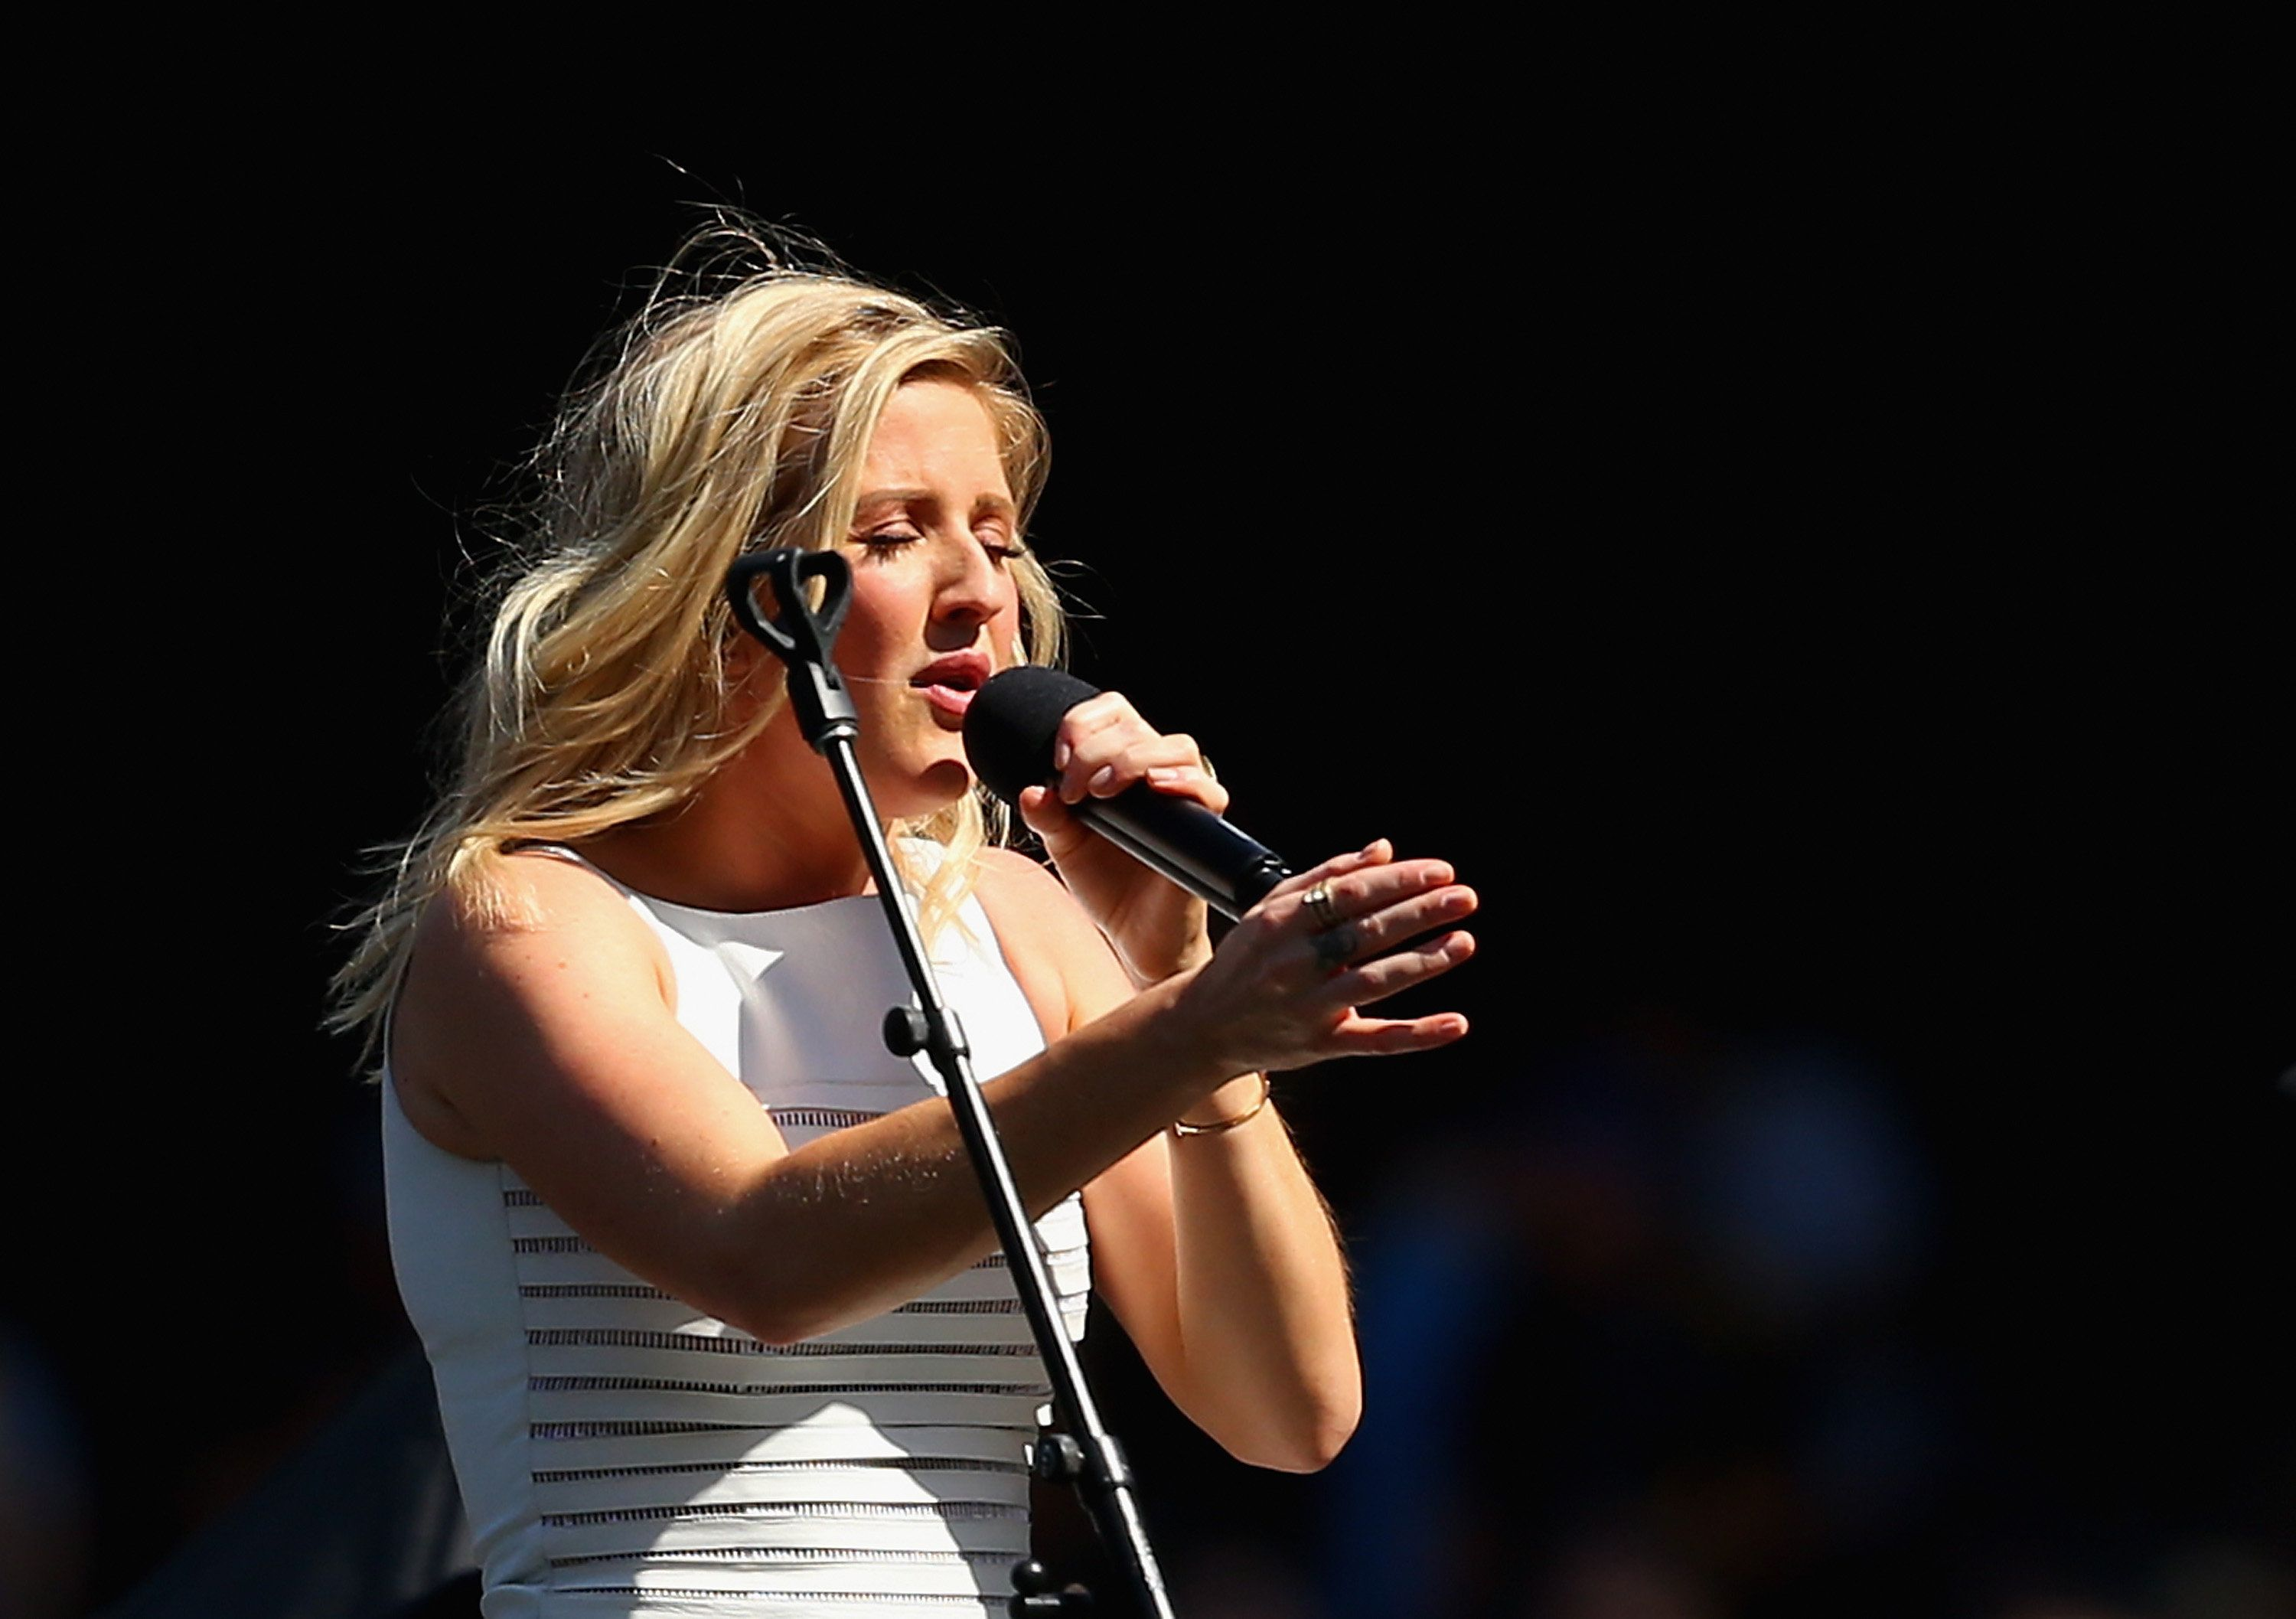 MELBOURNE, AUSTRALIA - OCTOBER 03:  Ellie Goulding performs during the 2015 AFL Grand Final match between the Hawthorn Hawks and the West Coast Eagles at Melbourne Cricket Ground on October 3, 2015 in Melbourne, Australia.  (Photo by Quinn Rooney/Getty Images)